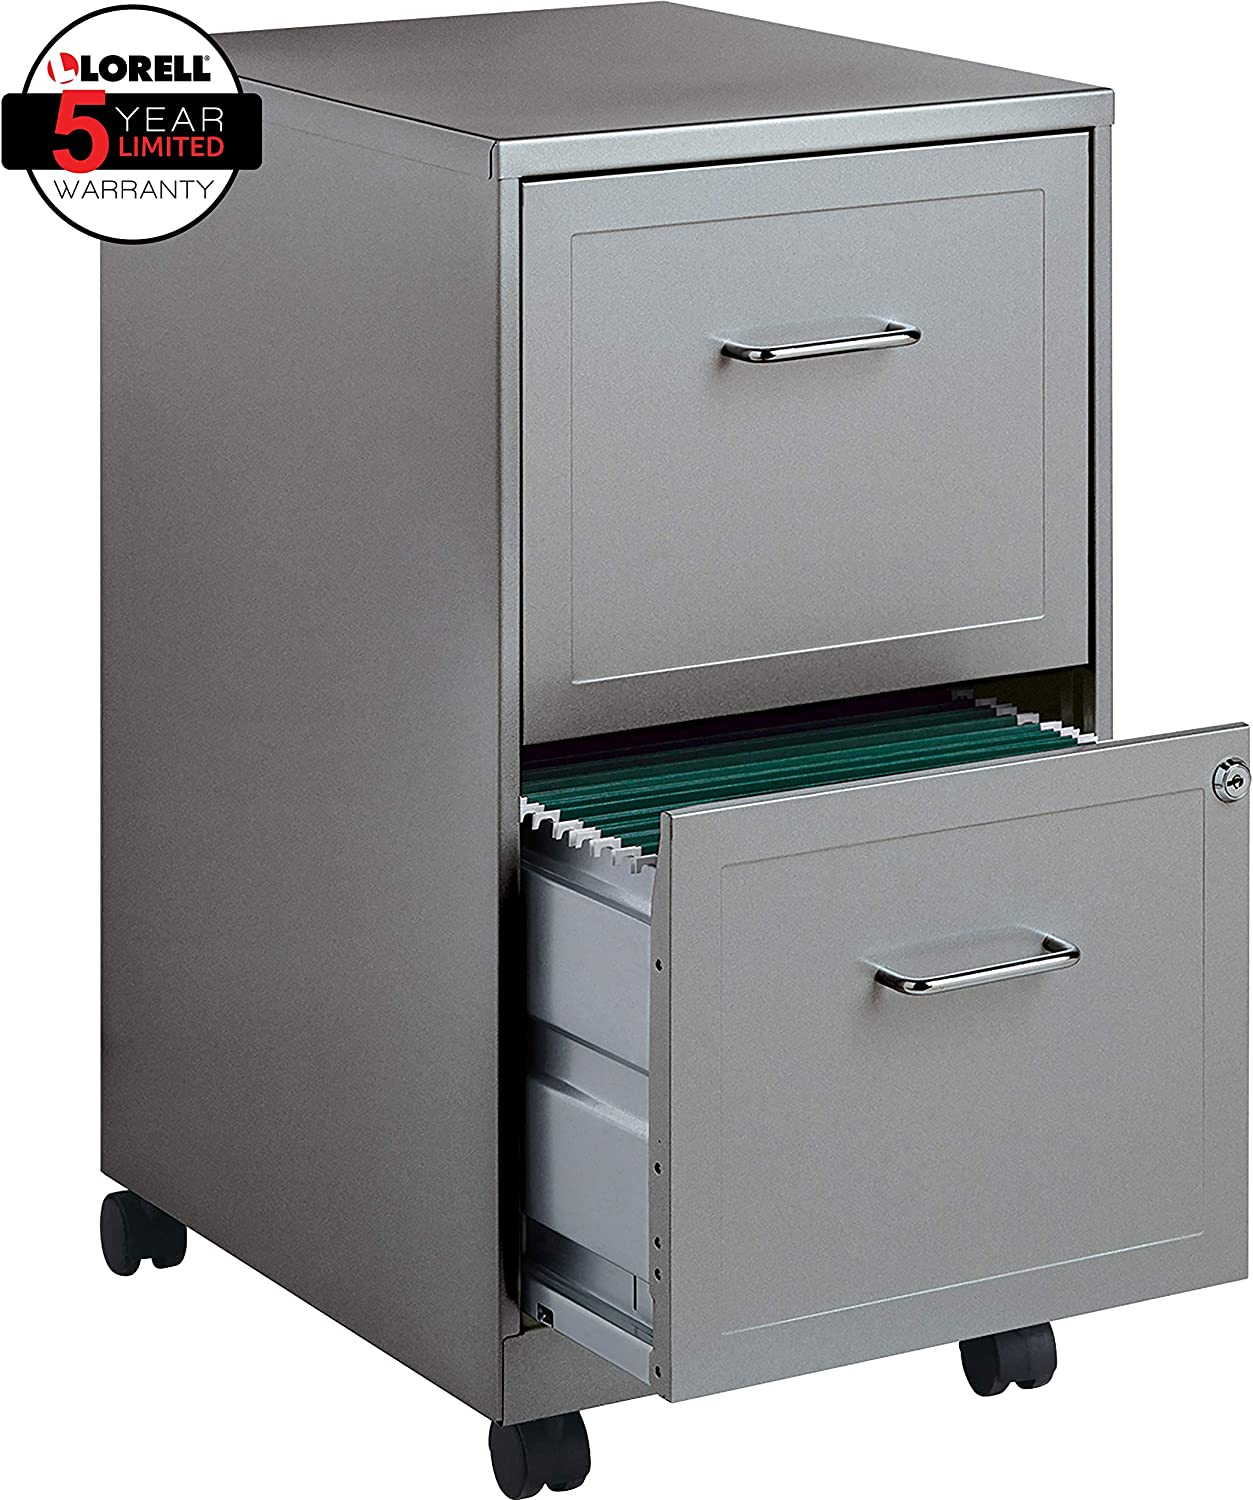 Lorell 35 35-Drawer Mobile File Cabinet, 35-Inch Depth - Gray